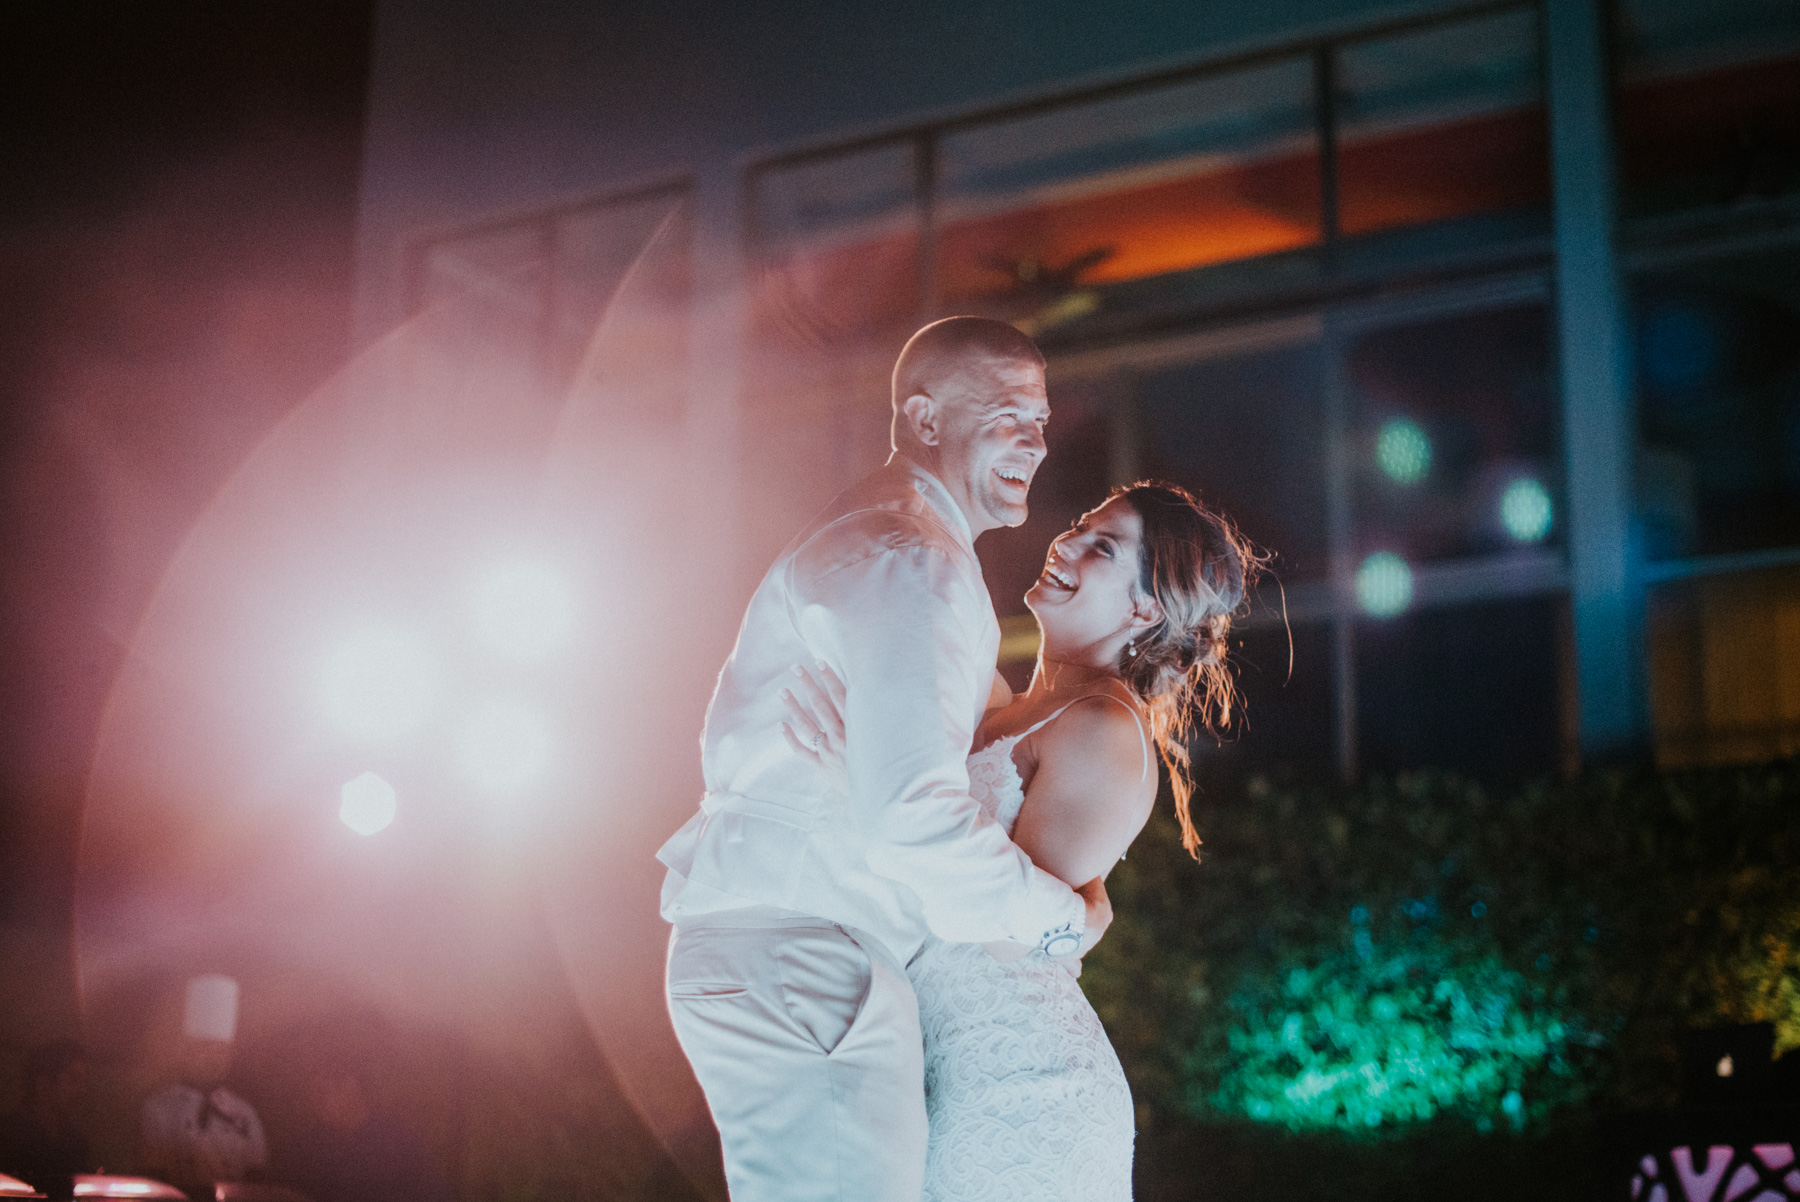 Julia and Tony's first dance during their beach reception. They got married right in front of the ocean and later had their first dance in the same spot. I love how windswept and boho htye look here. Just the right amount of tired and happy. I love photographing their cancun destination wedding elopement.